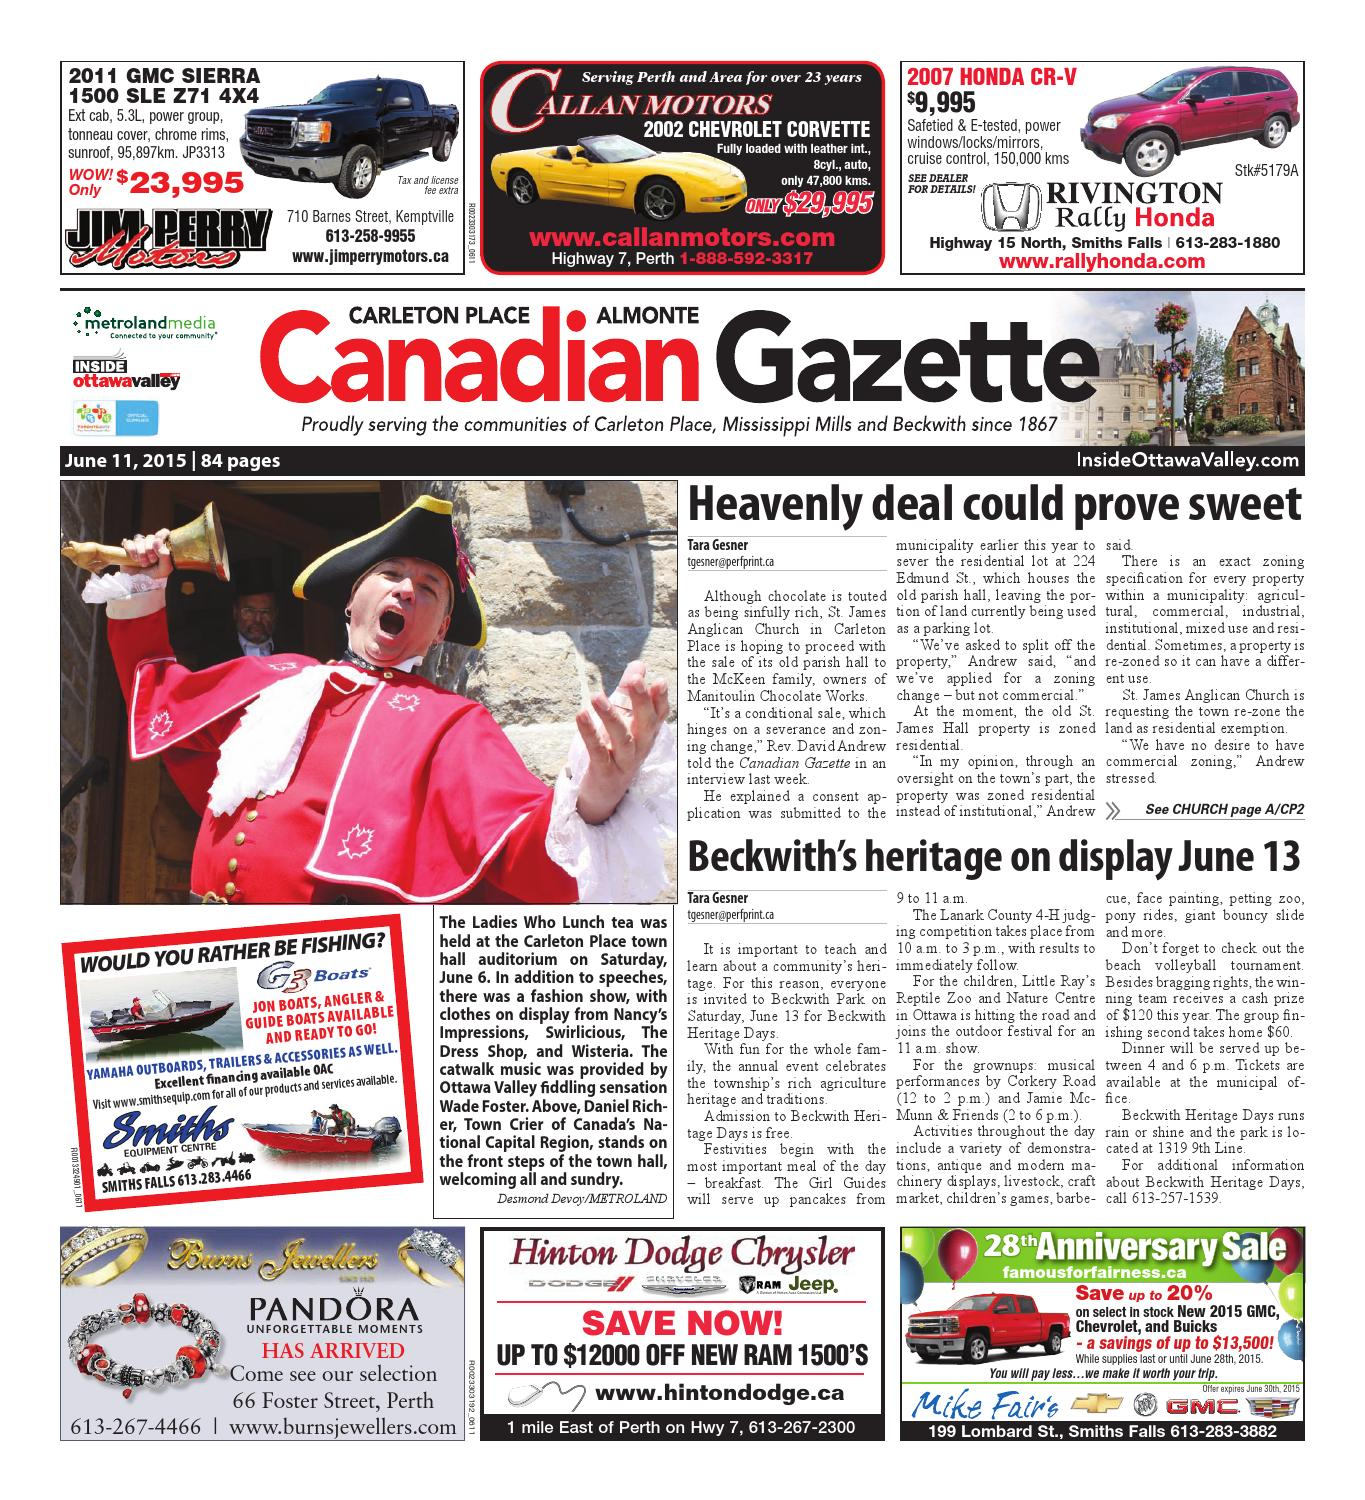 13774961d5a8 Almontecarletonplace061115 by Metroland East - Almonte Carleton Place  Canadian Gazette - issuu